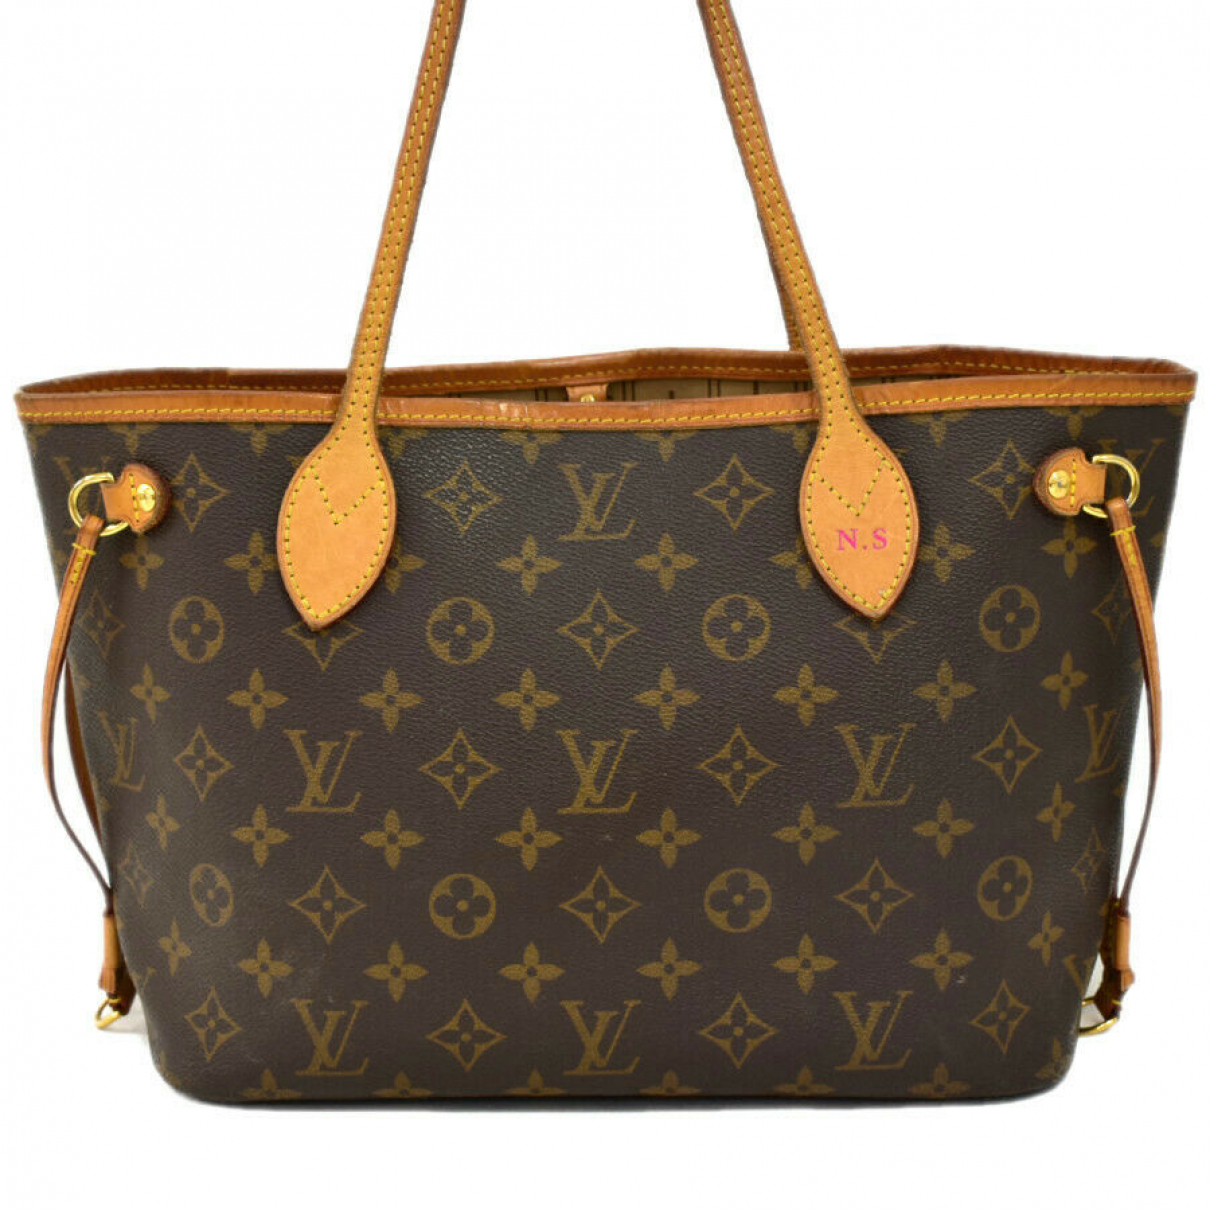 Louis Vuitton N Brown Leather handbag for Women N